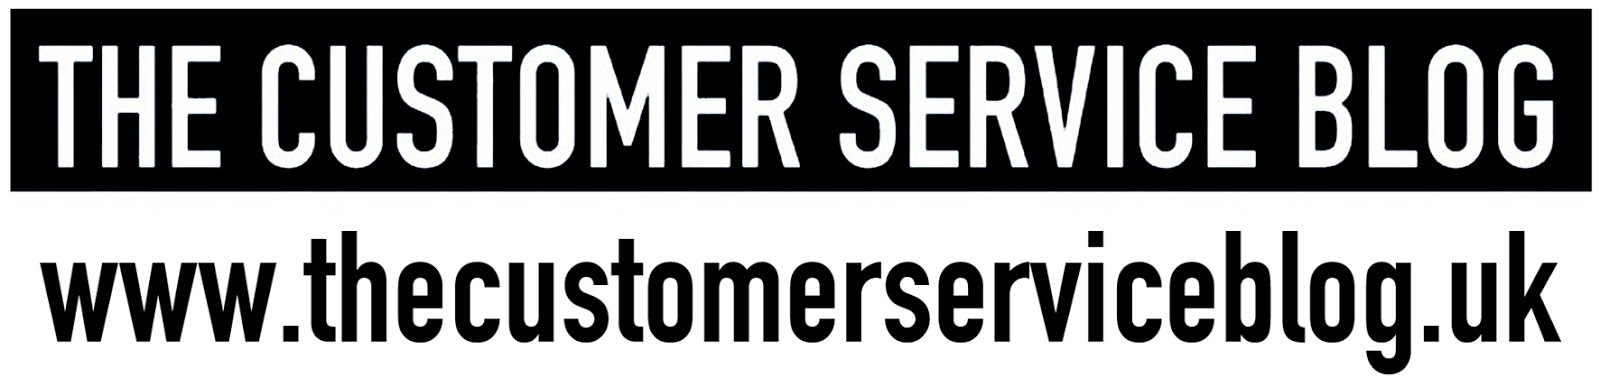 The Customer Service Blog